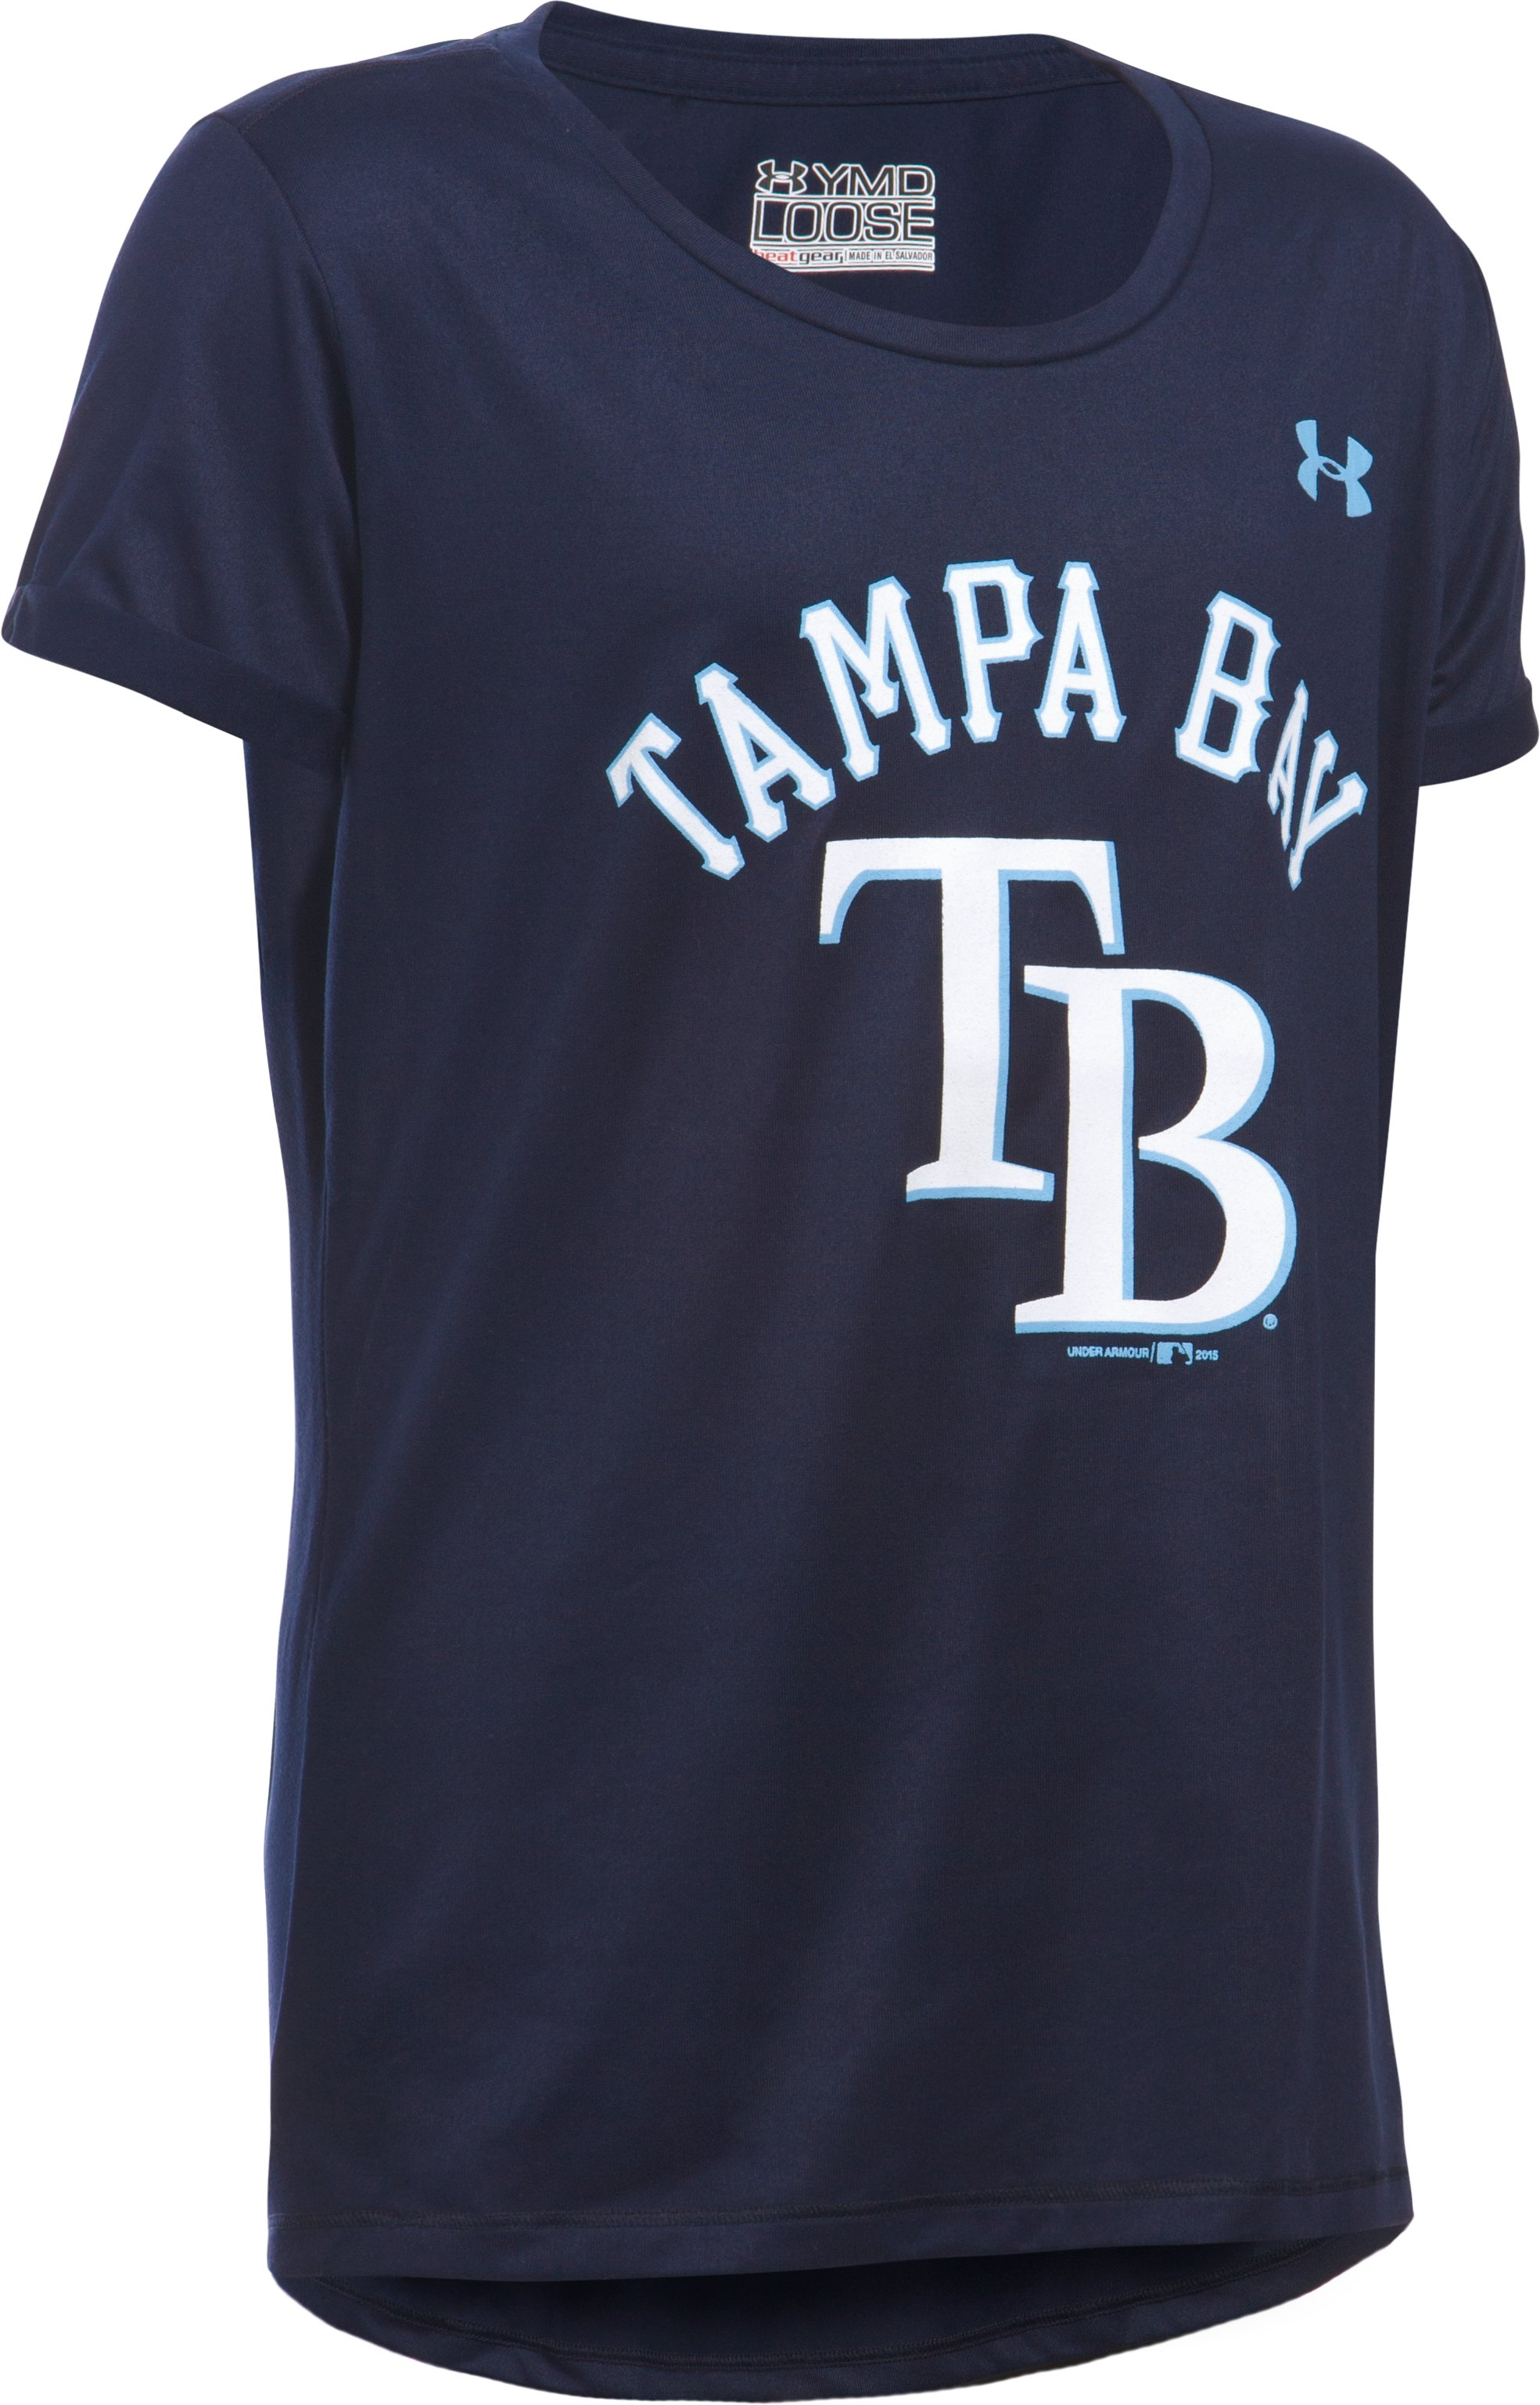 Girls' Tampa Bay Rays UA Tech™ T-Shirt, Midnight Navy